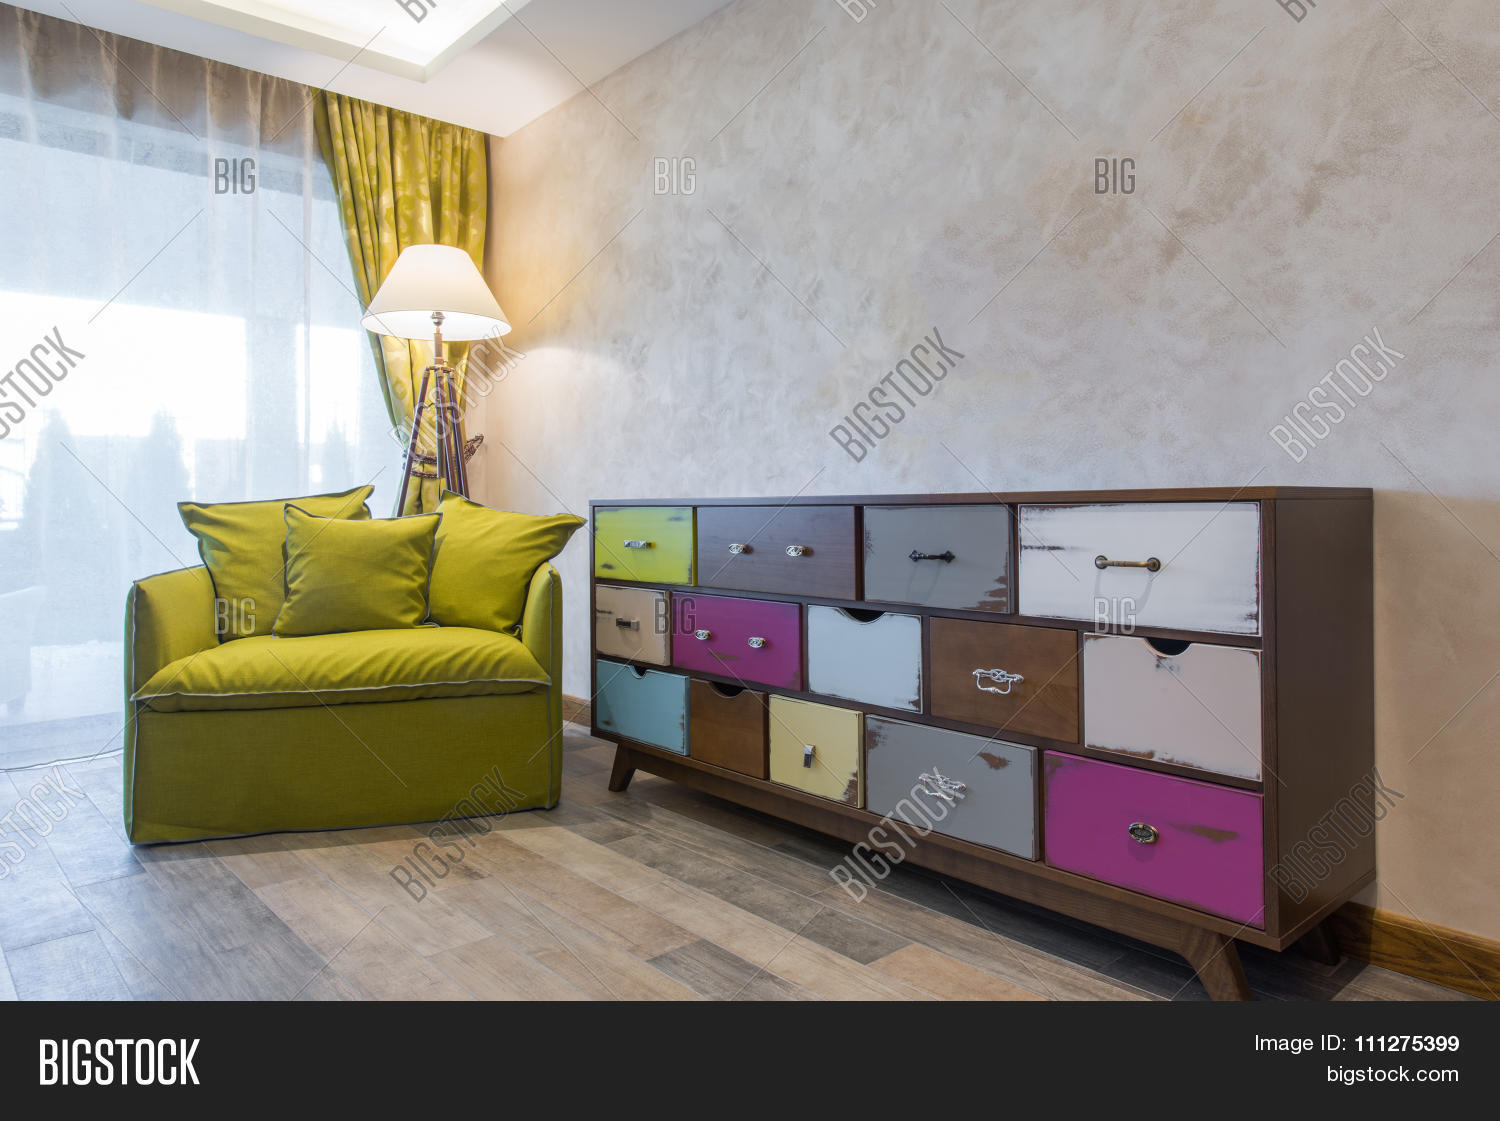 Shabby chic style commode image photo bigstock for Commode style shabby